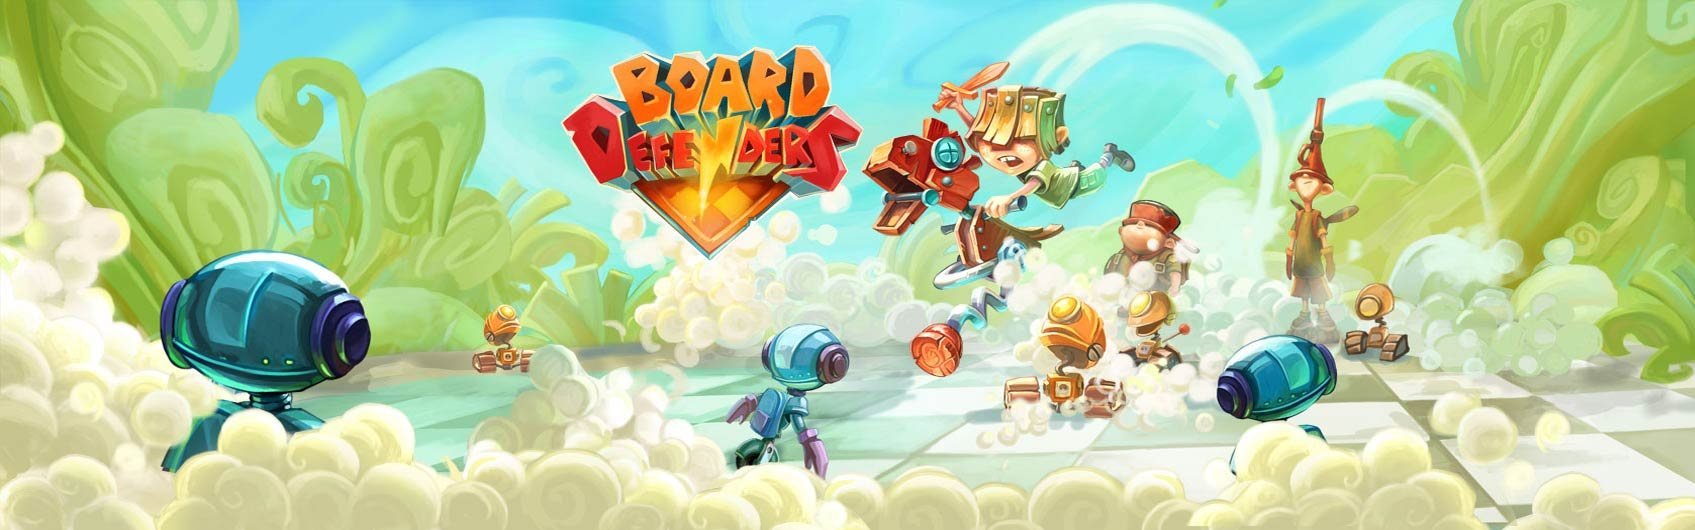 Board Defenders Steam Key GLOBAL